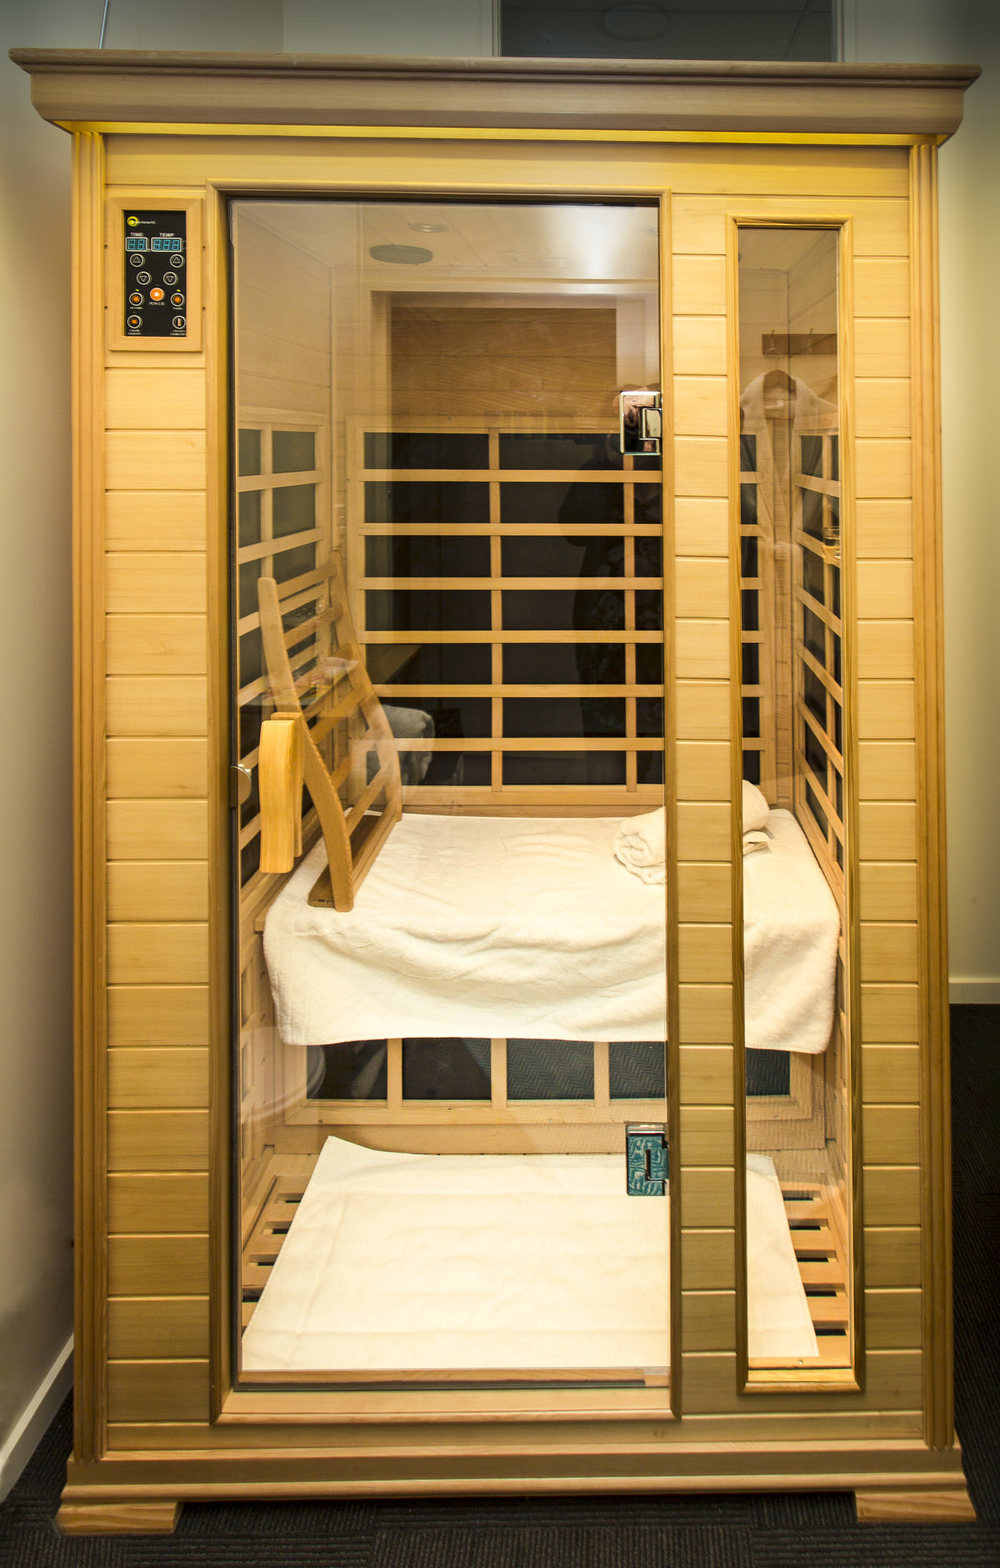 infrared-sauna-photo.jpg